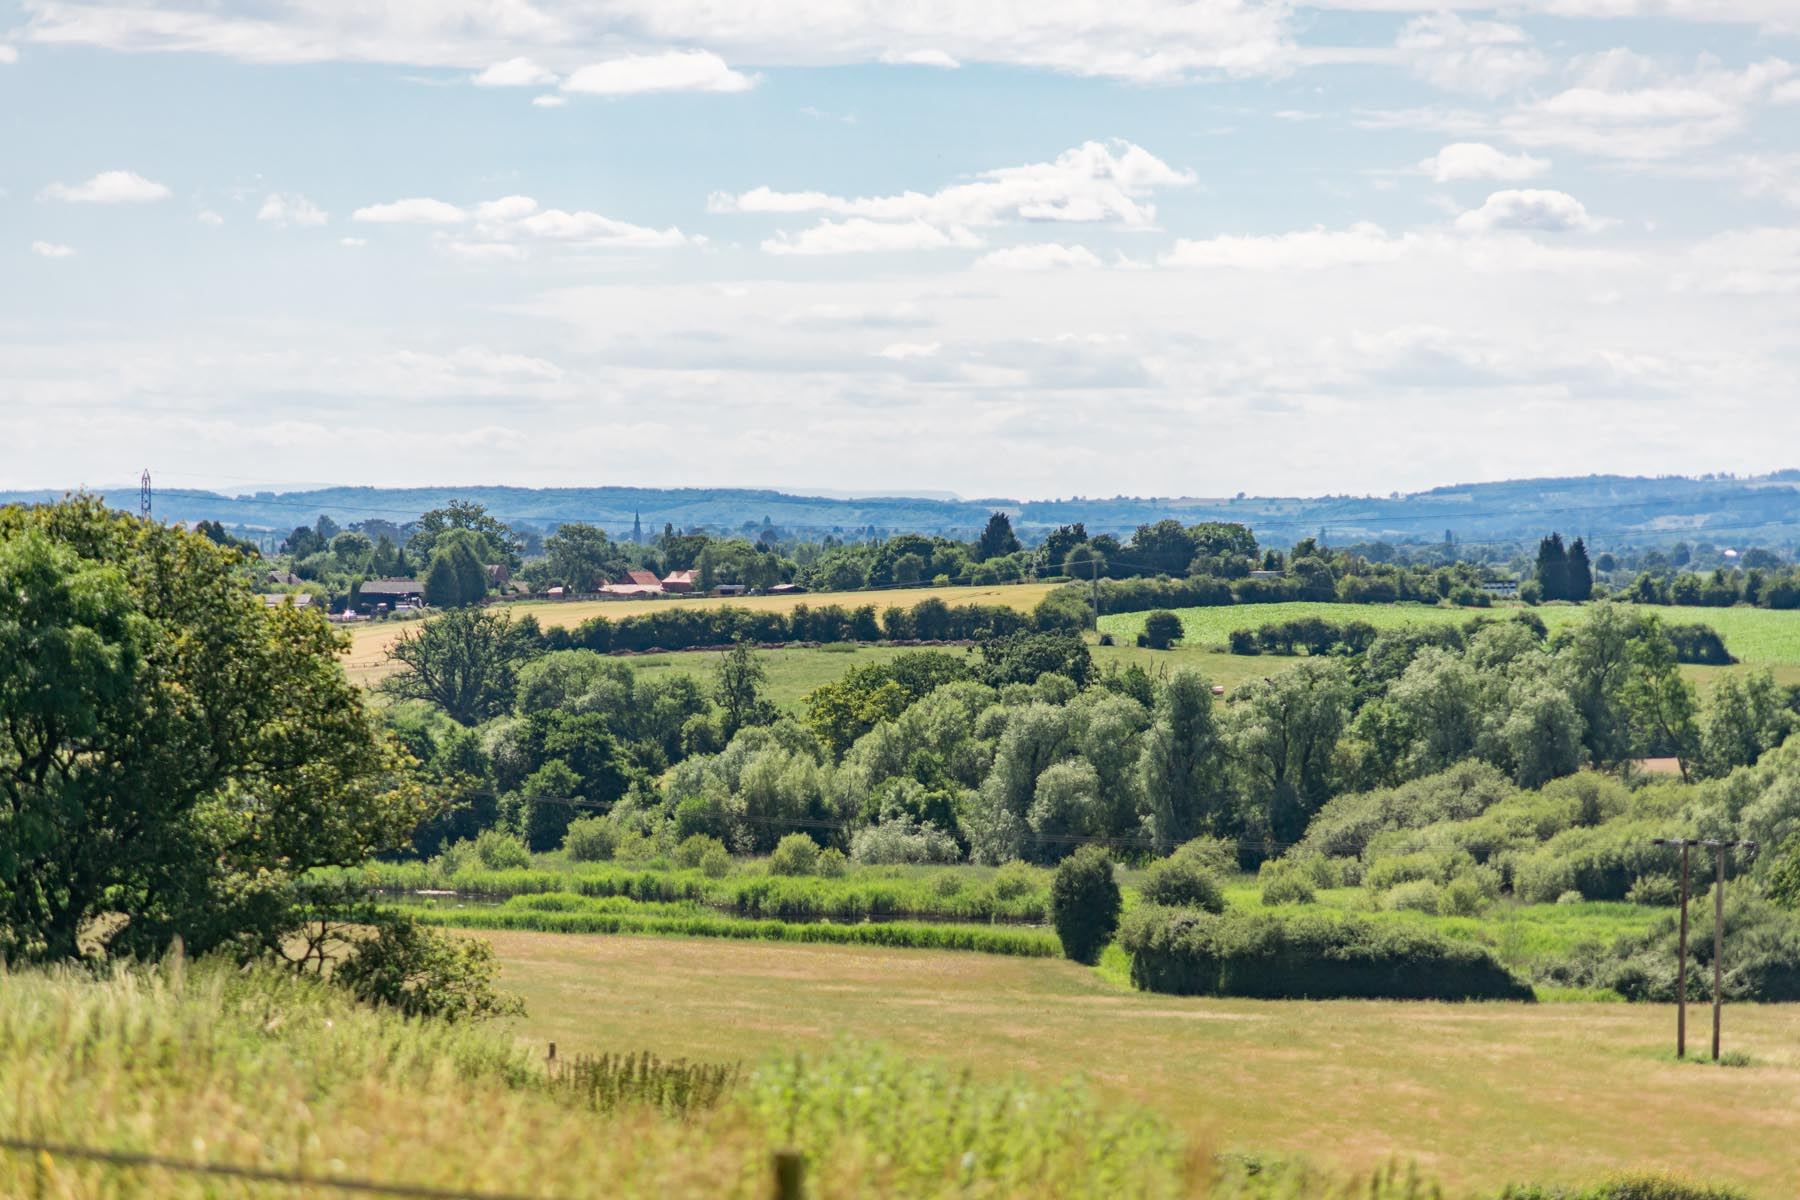 View 2 - Mapple-Coppice-locationshots-08